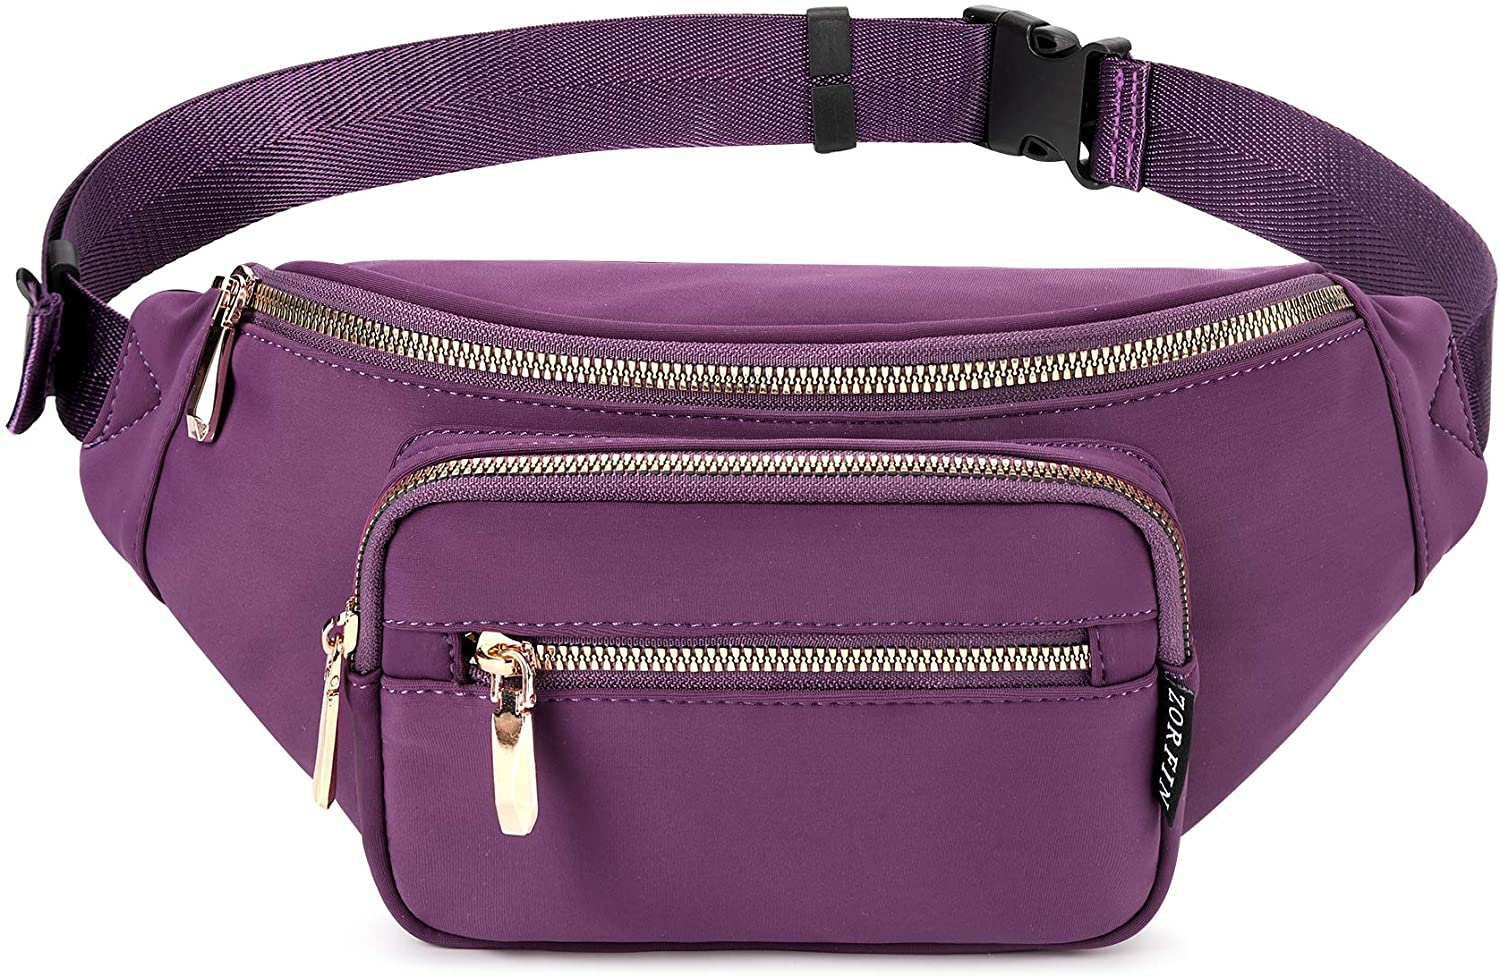 ZORFIN Fanny Pack Nylon Water Resistant Waist Bag Pack for Women (Purple2)